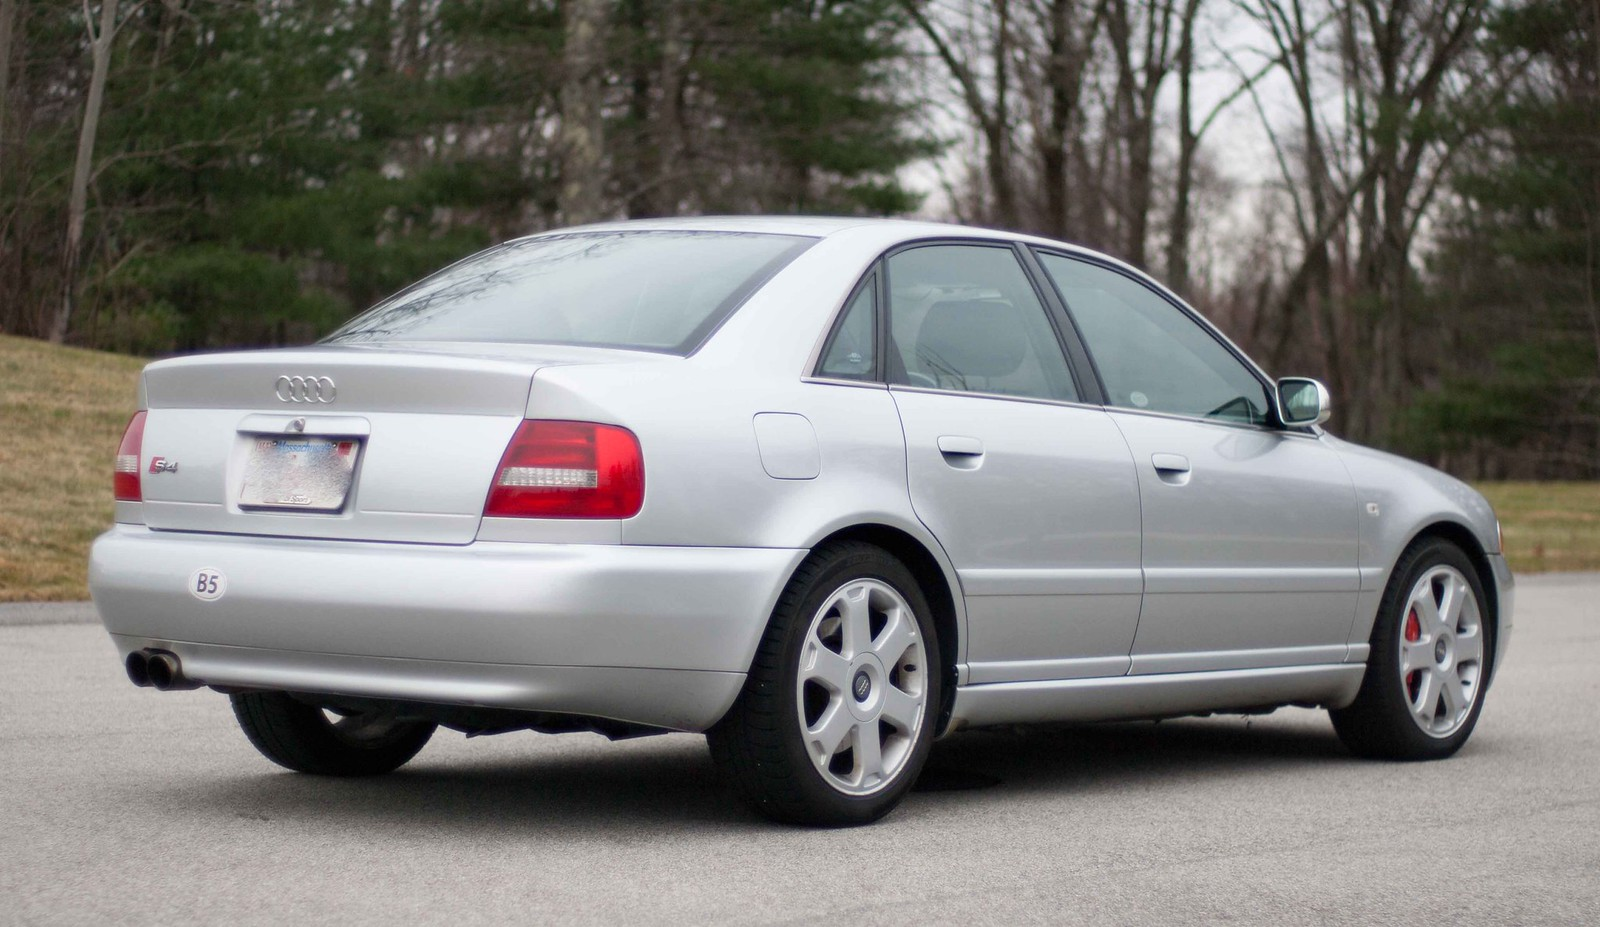 Quattroworld Com Forums  Sold  Original Owner 2001 Audi S4 Silver 6 Speed  95k Miles